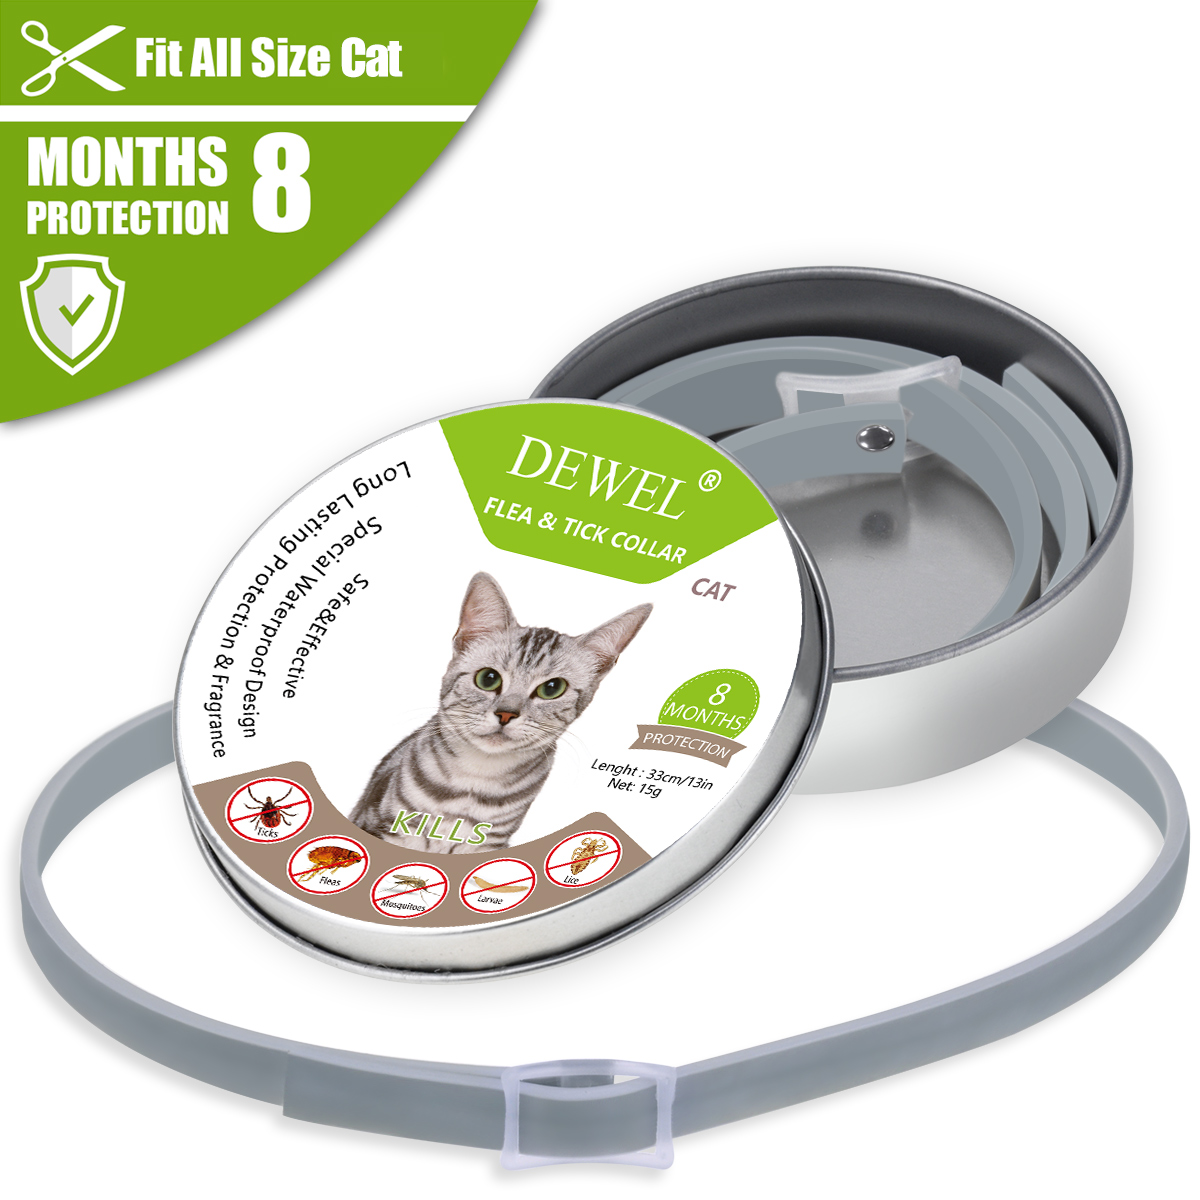 Dewel Pro Guard Flea and Tick Collar for Cats - It's Not Just for Dogs | Dewel Pro